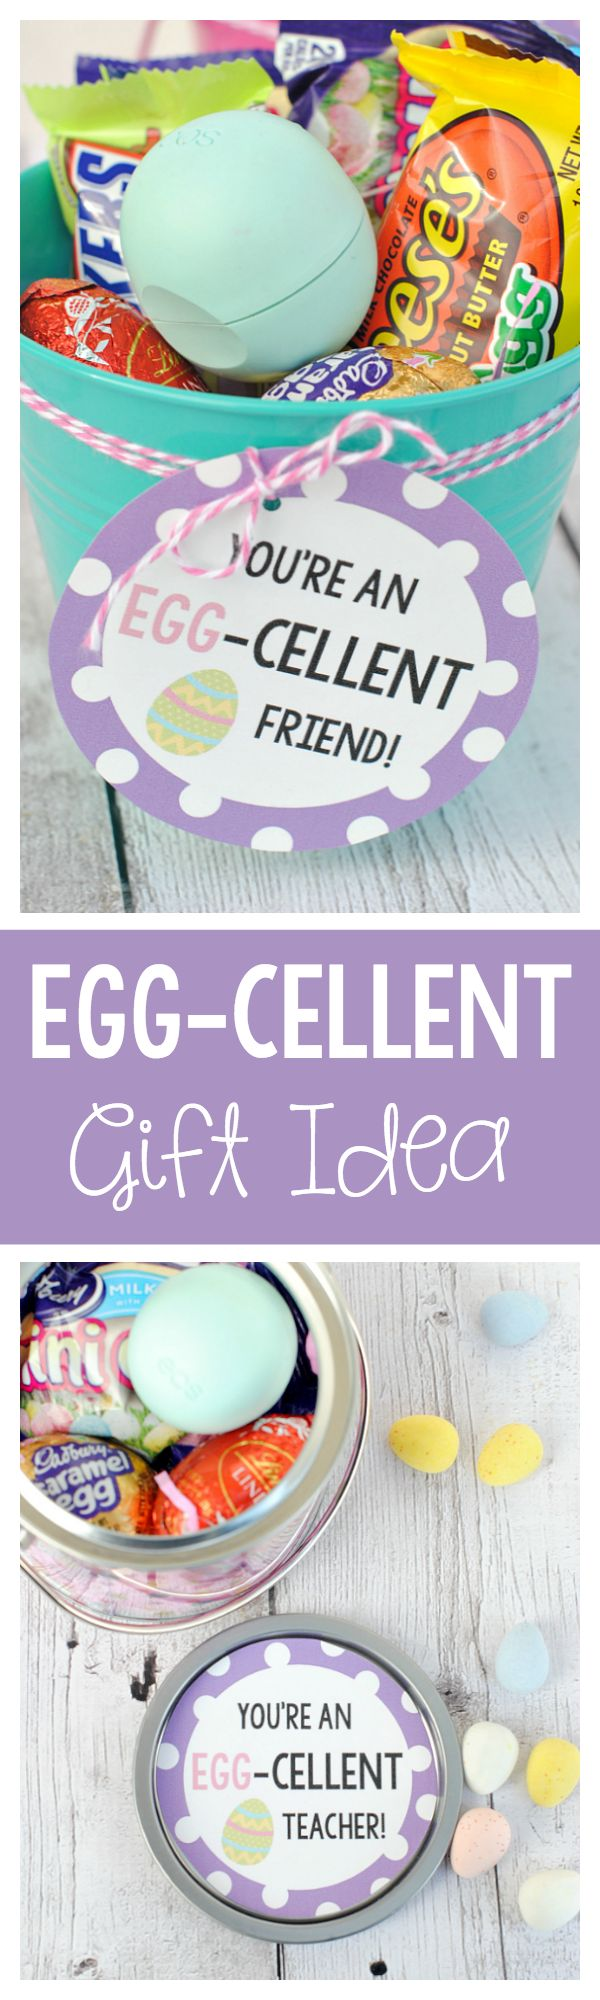 661 best gift ideas images on pinterest holidays body wraps and egg cellent easter gift idea negle Image collections